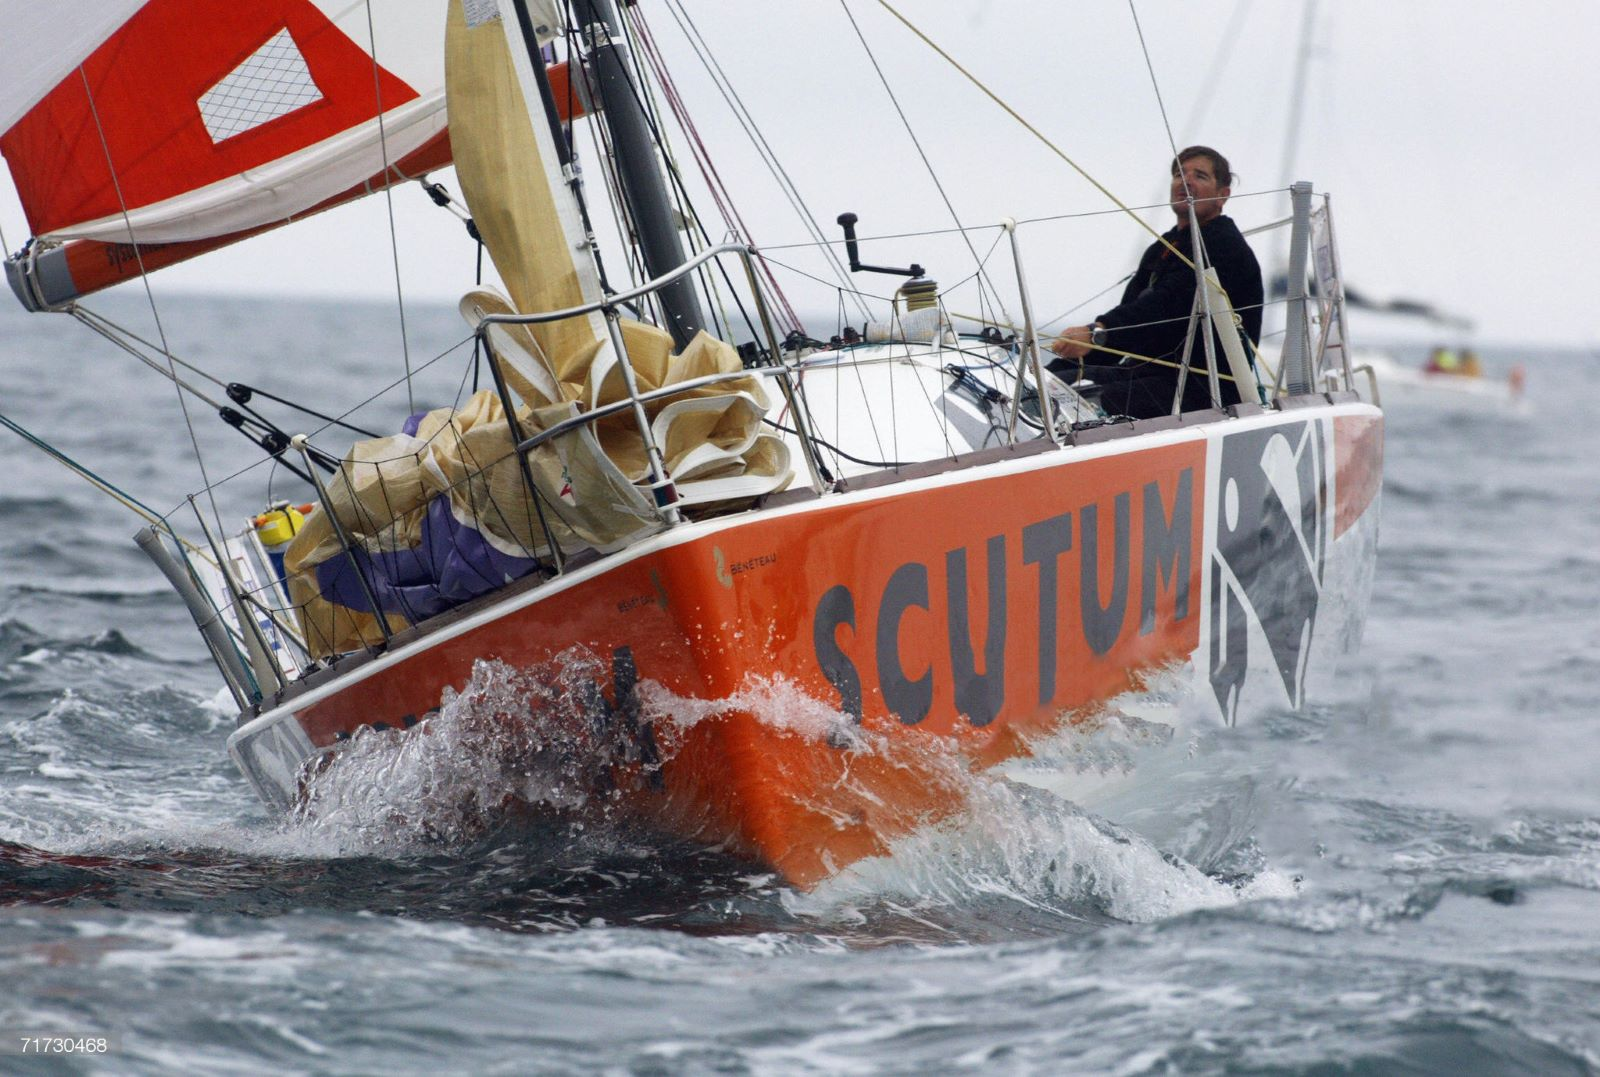 Zeilboot met logo van Scutum Security